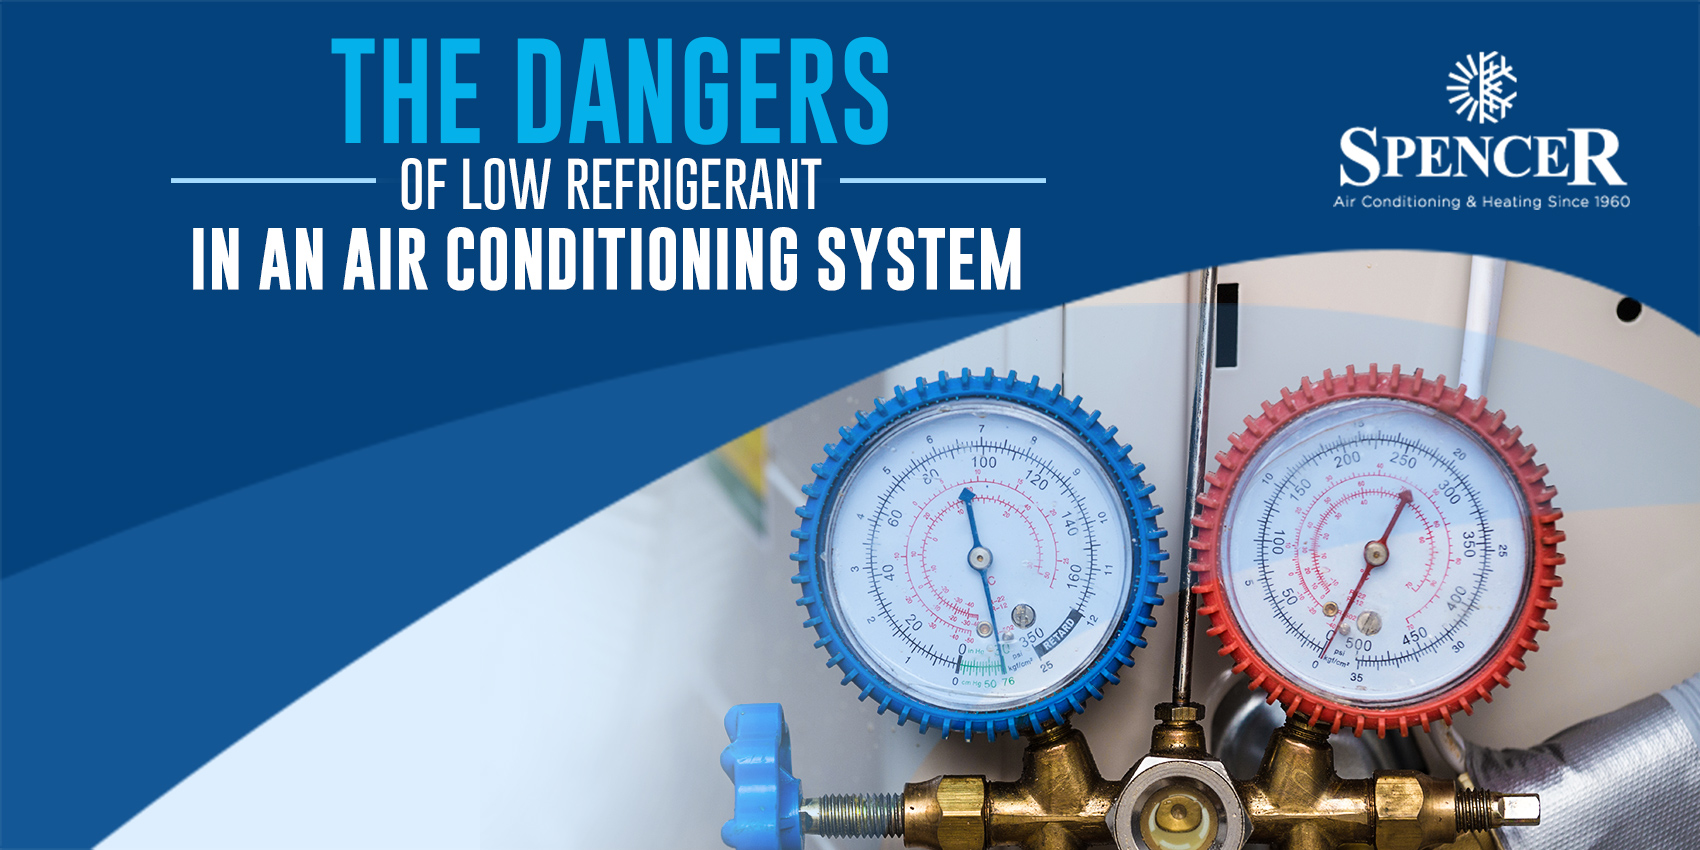 The Dangers of Low Refrigerant in an Air Conditioning System